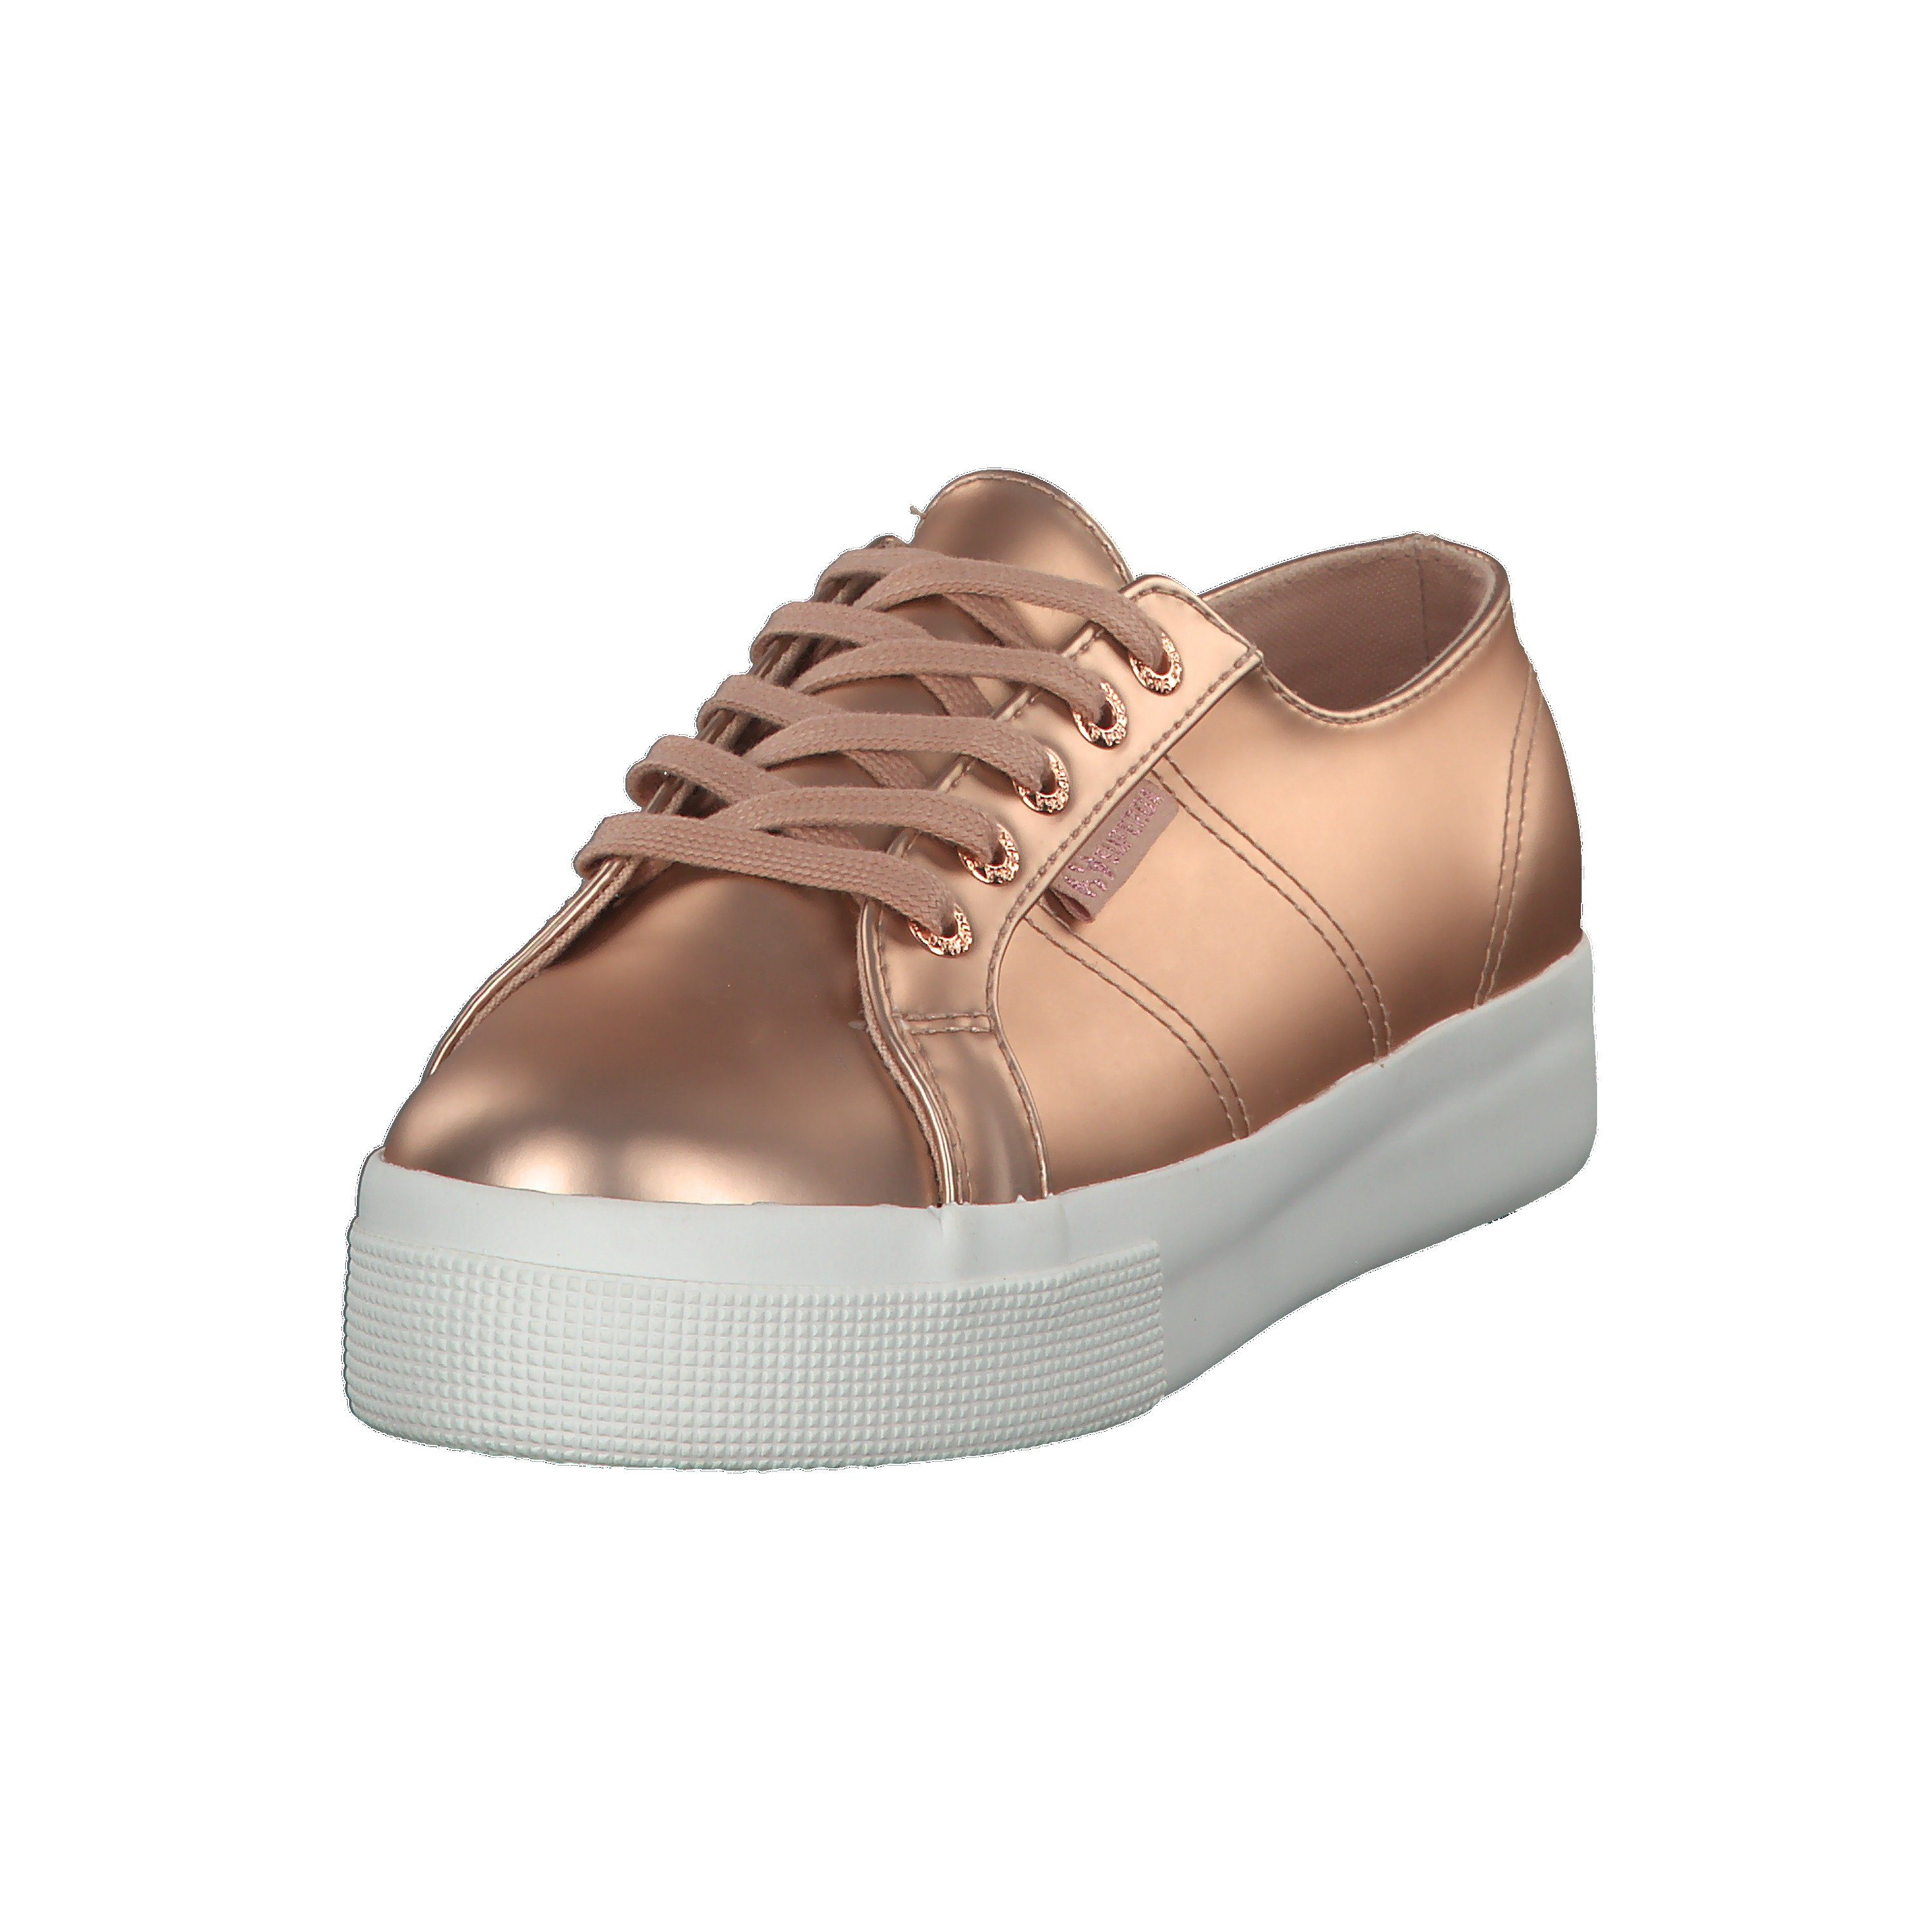 Syntpearledw W4g« SneakerOtto »2730 Superga S00fij0 qzGMSUpV